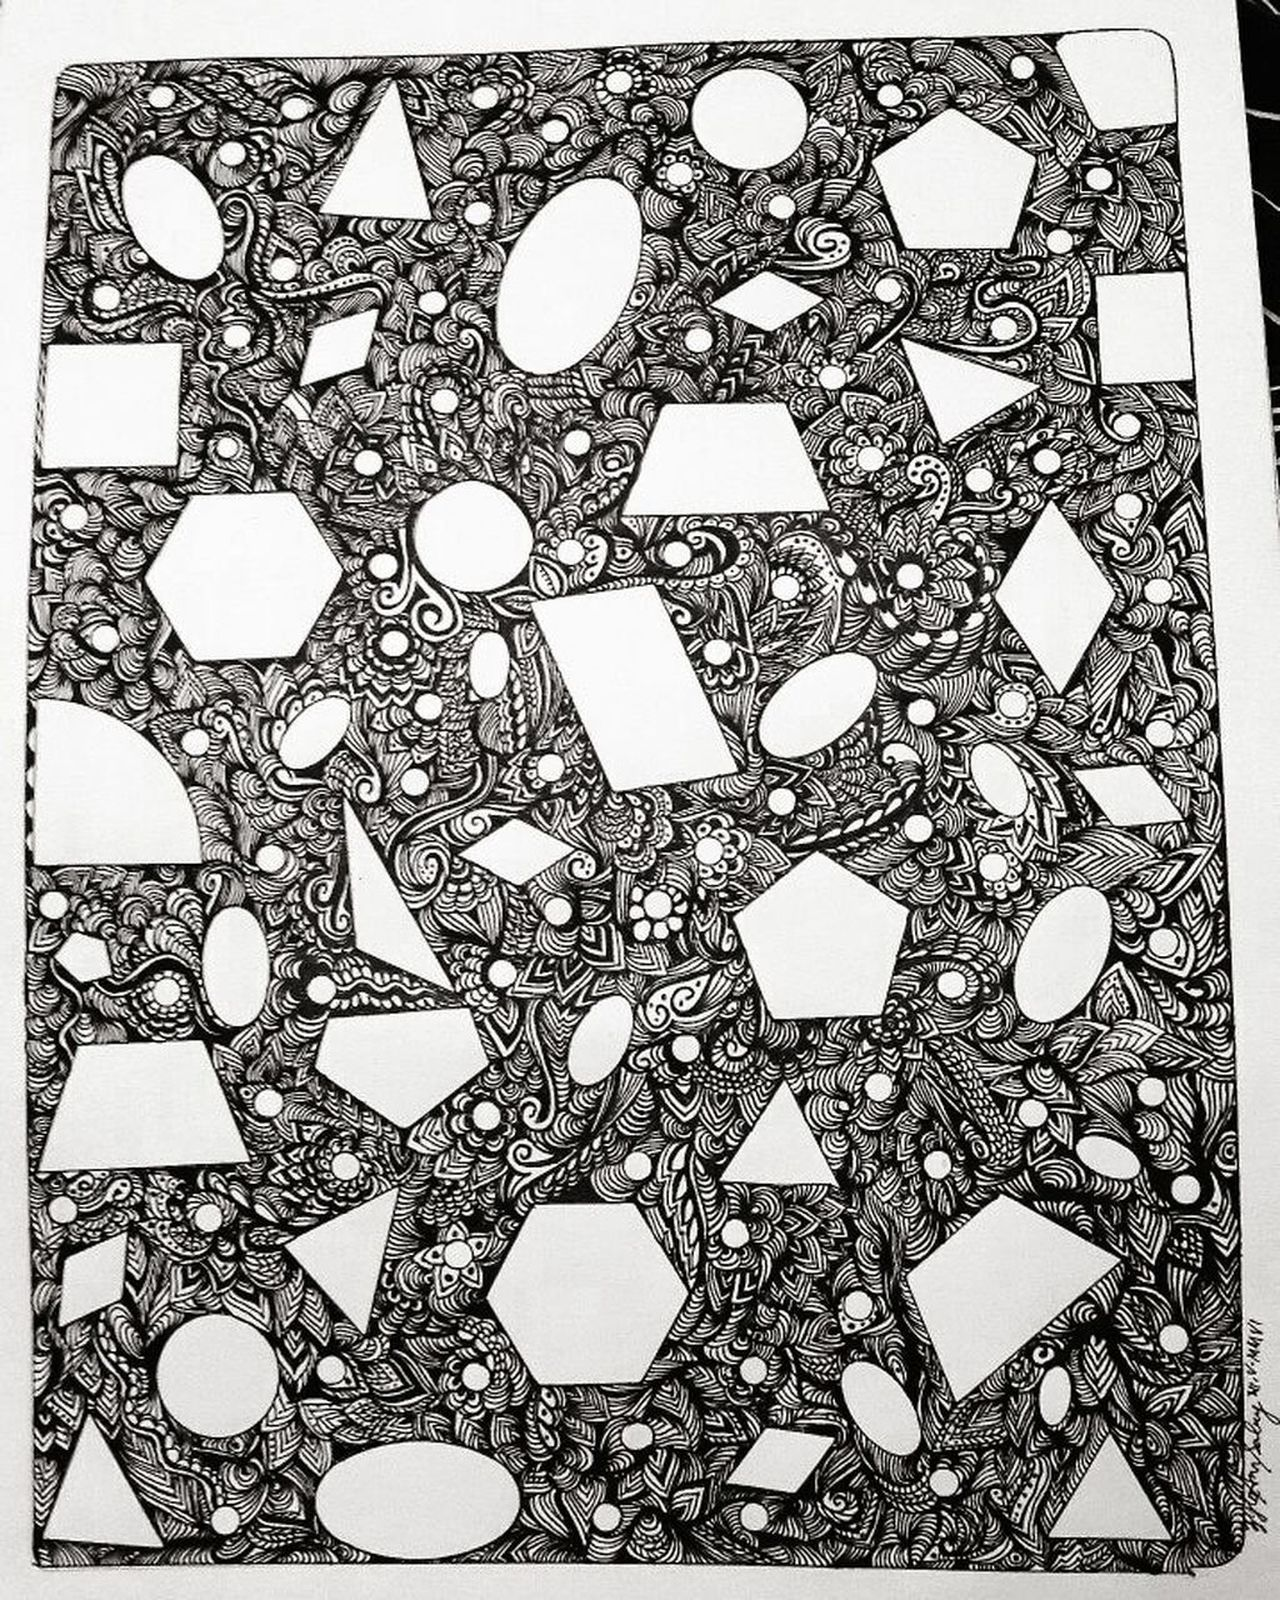 When inner demons won't let me sleep, I let them out with the help of my pen and paper. 🎨 Pattern No People Zentangleart ZentangleInspiredArt Artist Blackandwhite Black & White Pen And Ink Pen And Paper Geometric Art Geometric Design Accidental Art ArtWork Doodle Art, Drawing, Creativity Artists Artofvisuals Stressrelief Frustratedartist Moments